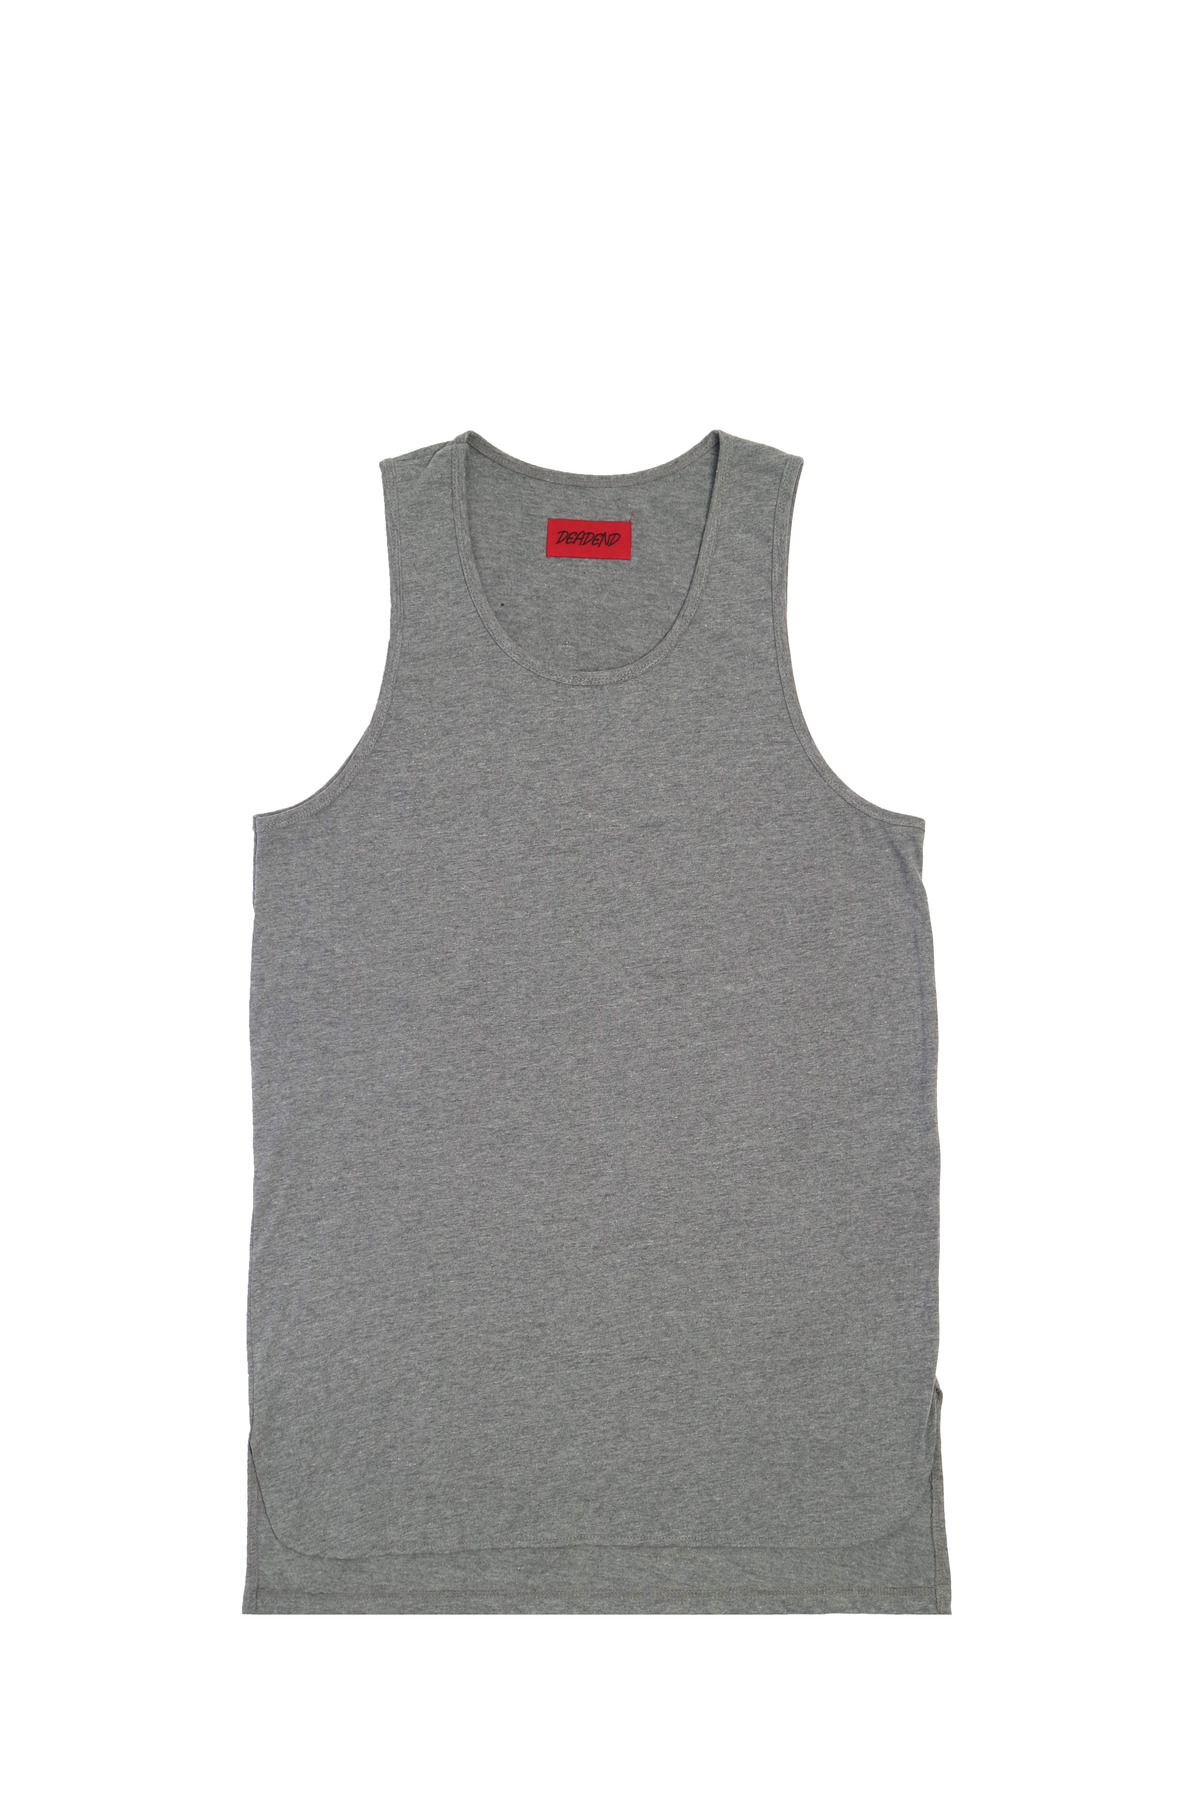 GREY LAYERED SLEEVELESS